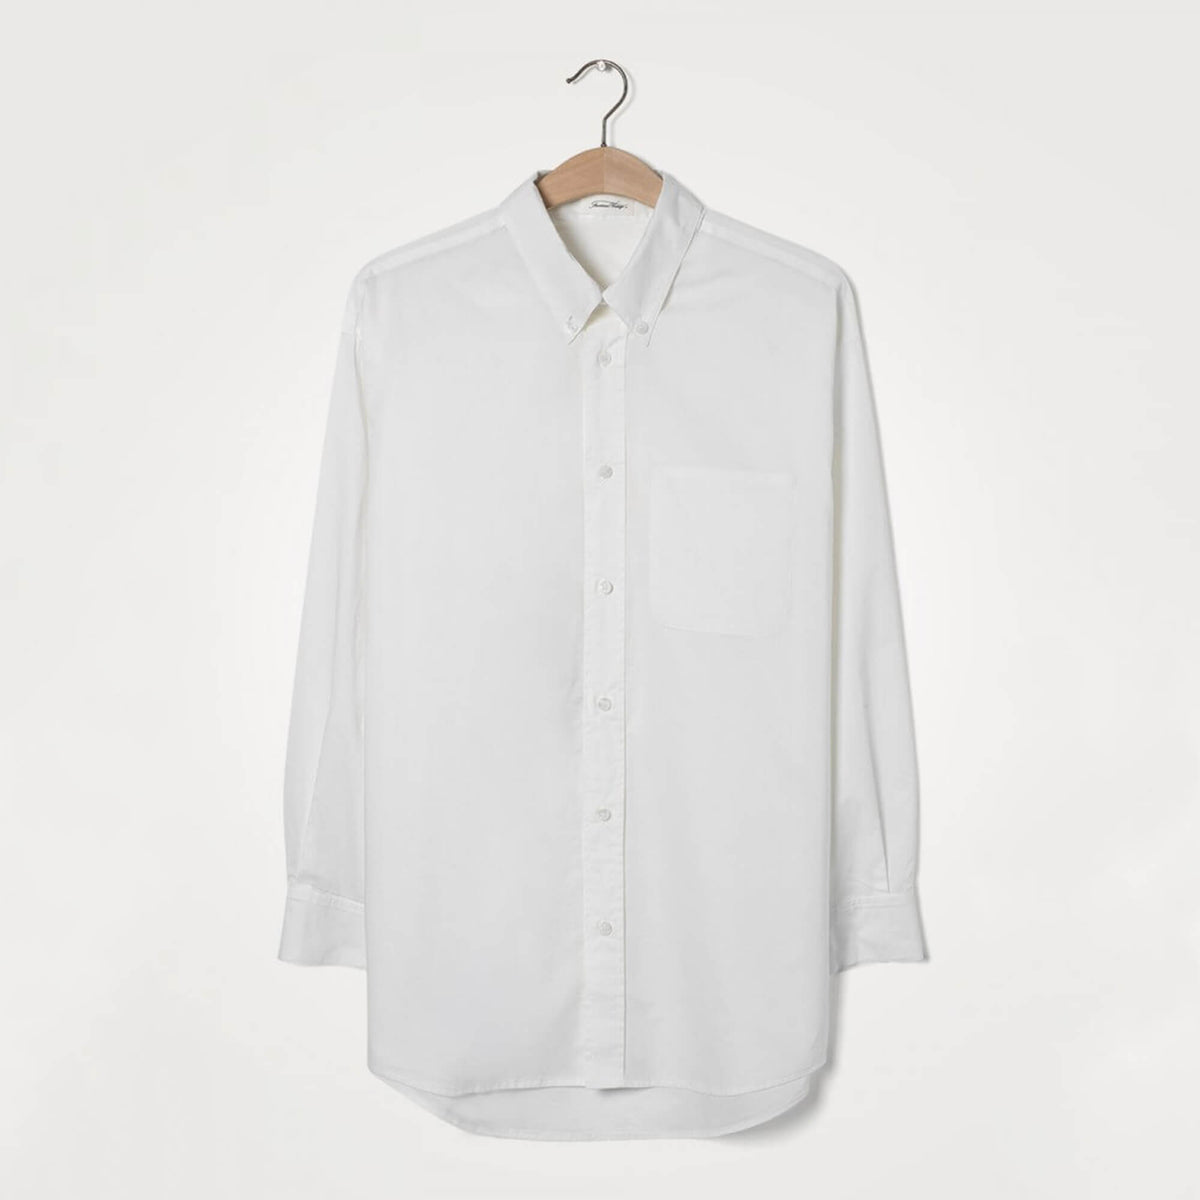 AV KRIM105 Oversized shirt in white